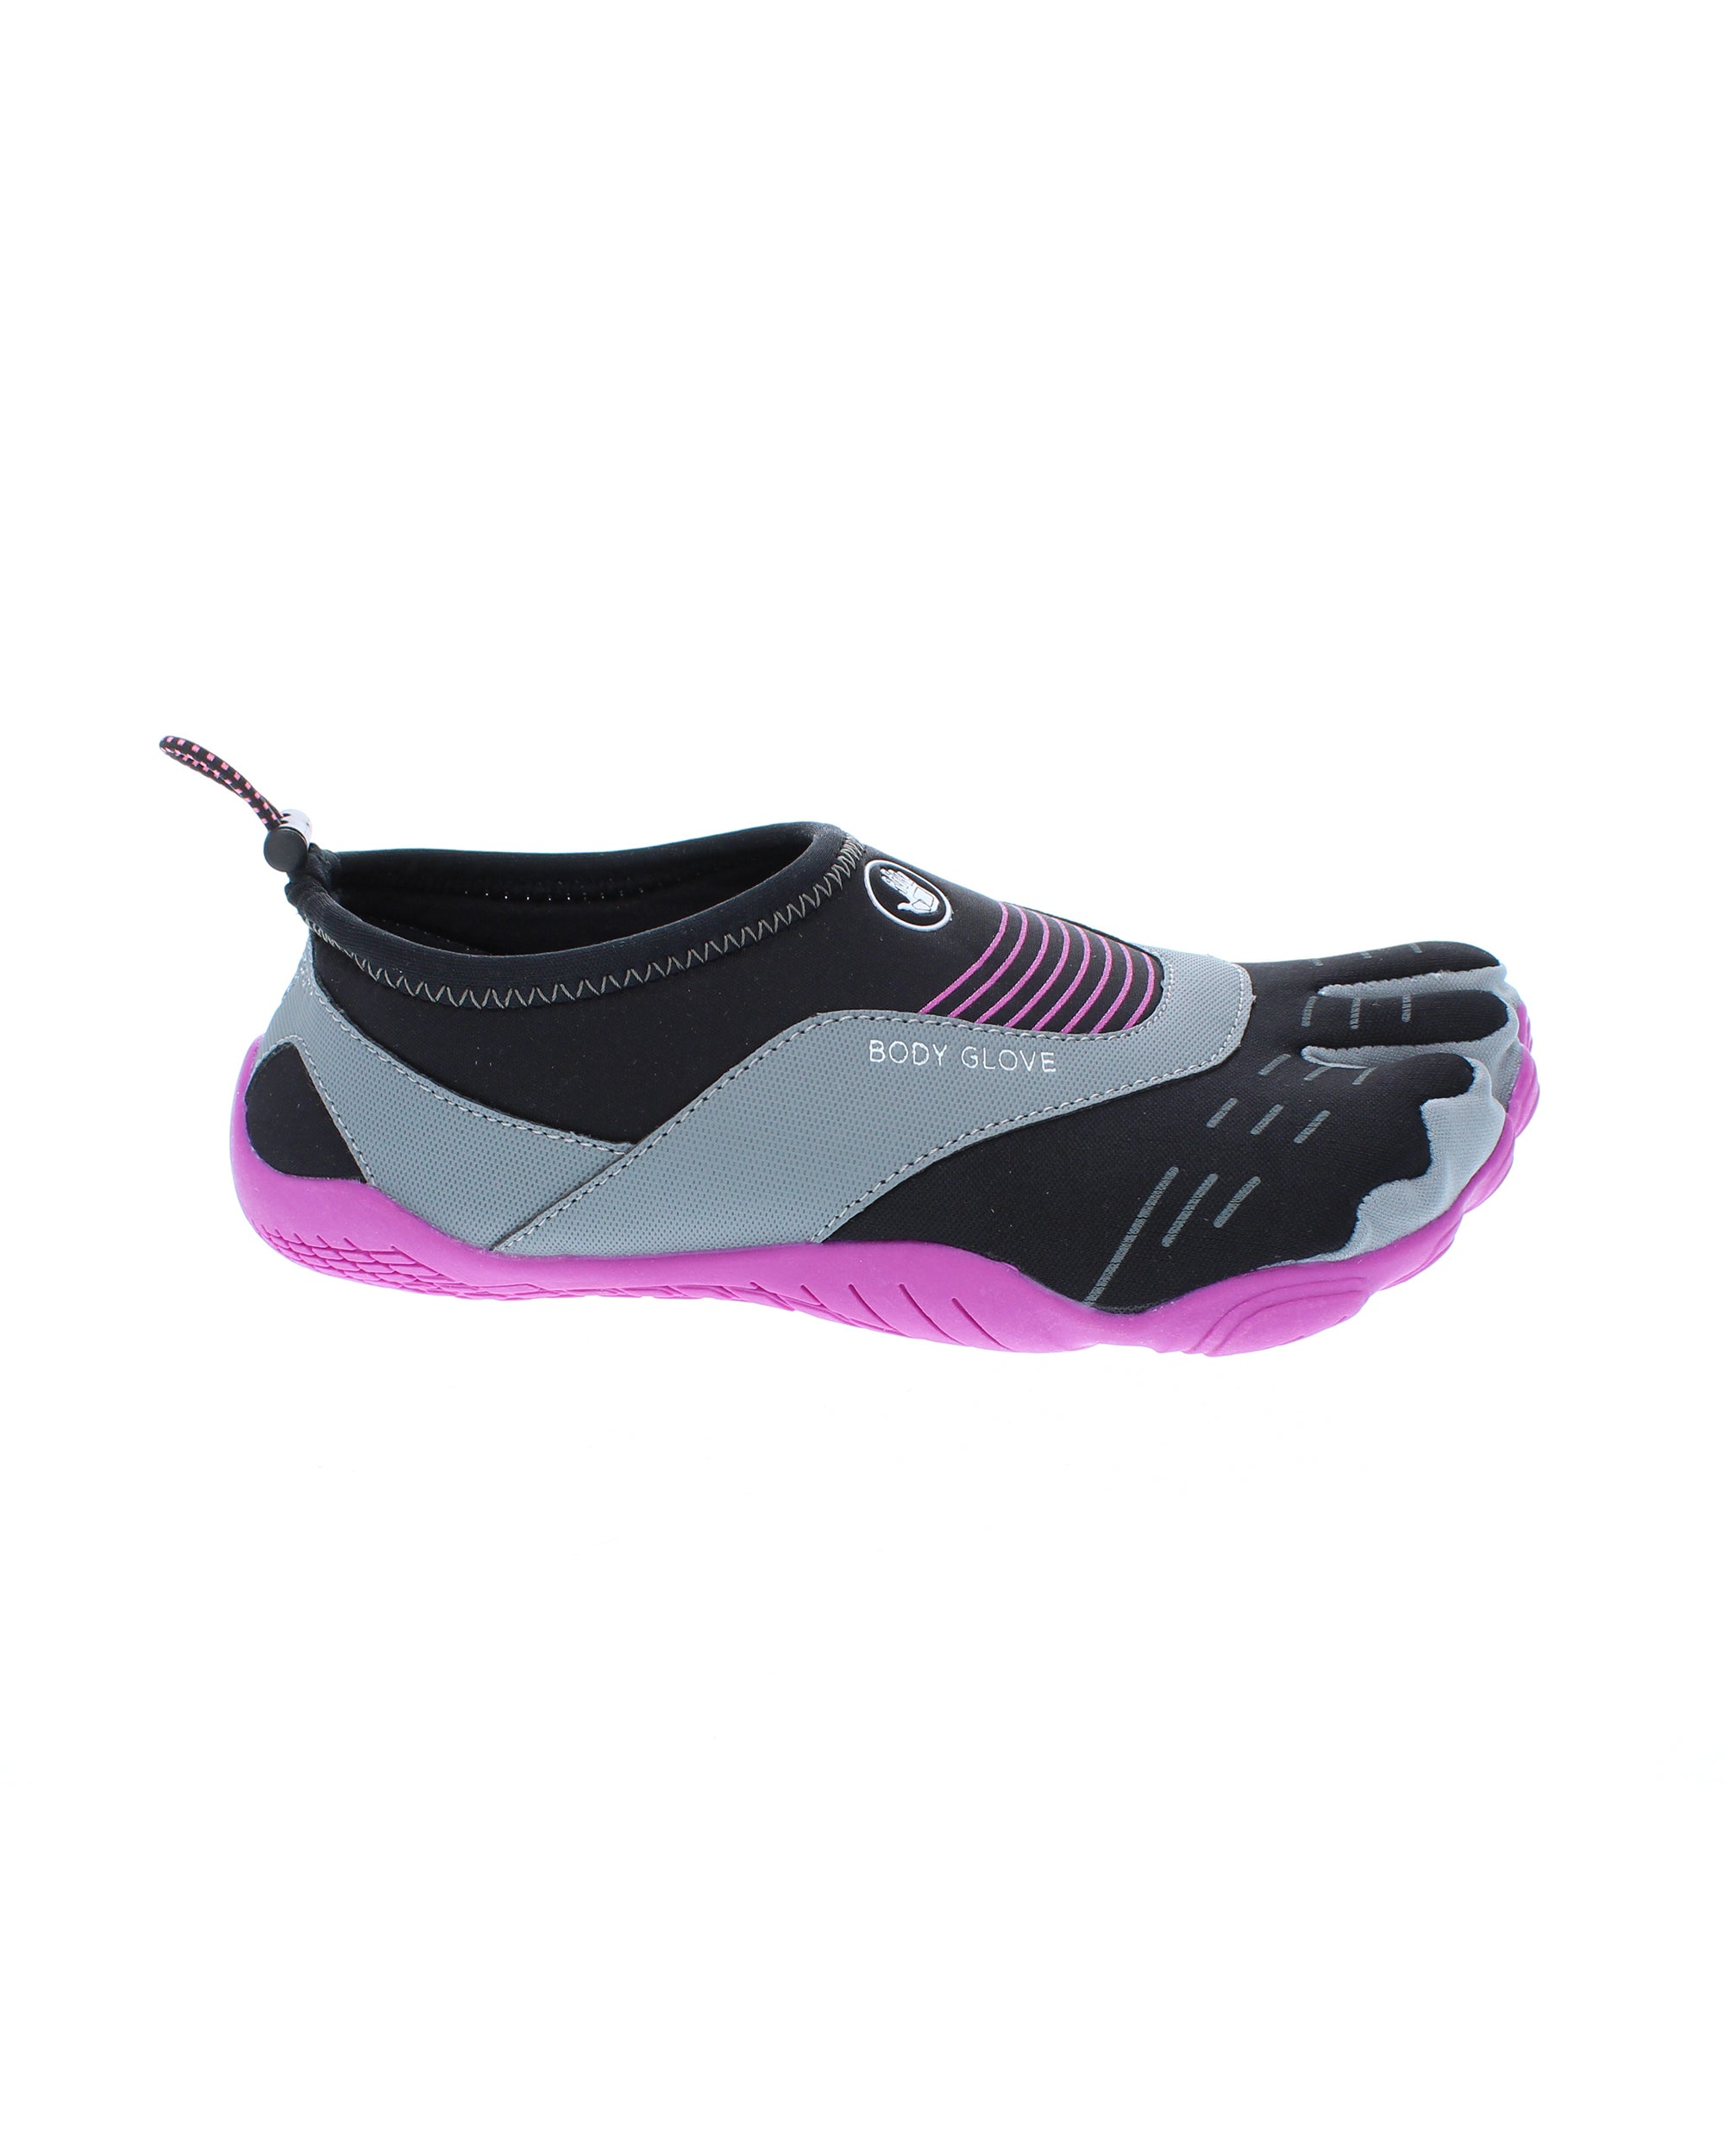 Women's 3T Barefoot Cinch Water Shoes - Black/Flamingo Pink